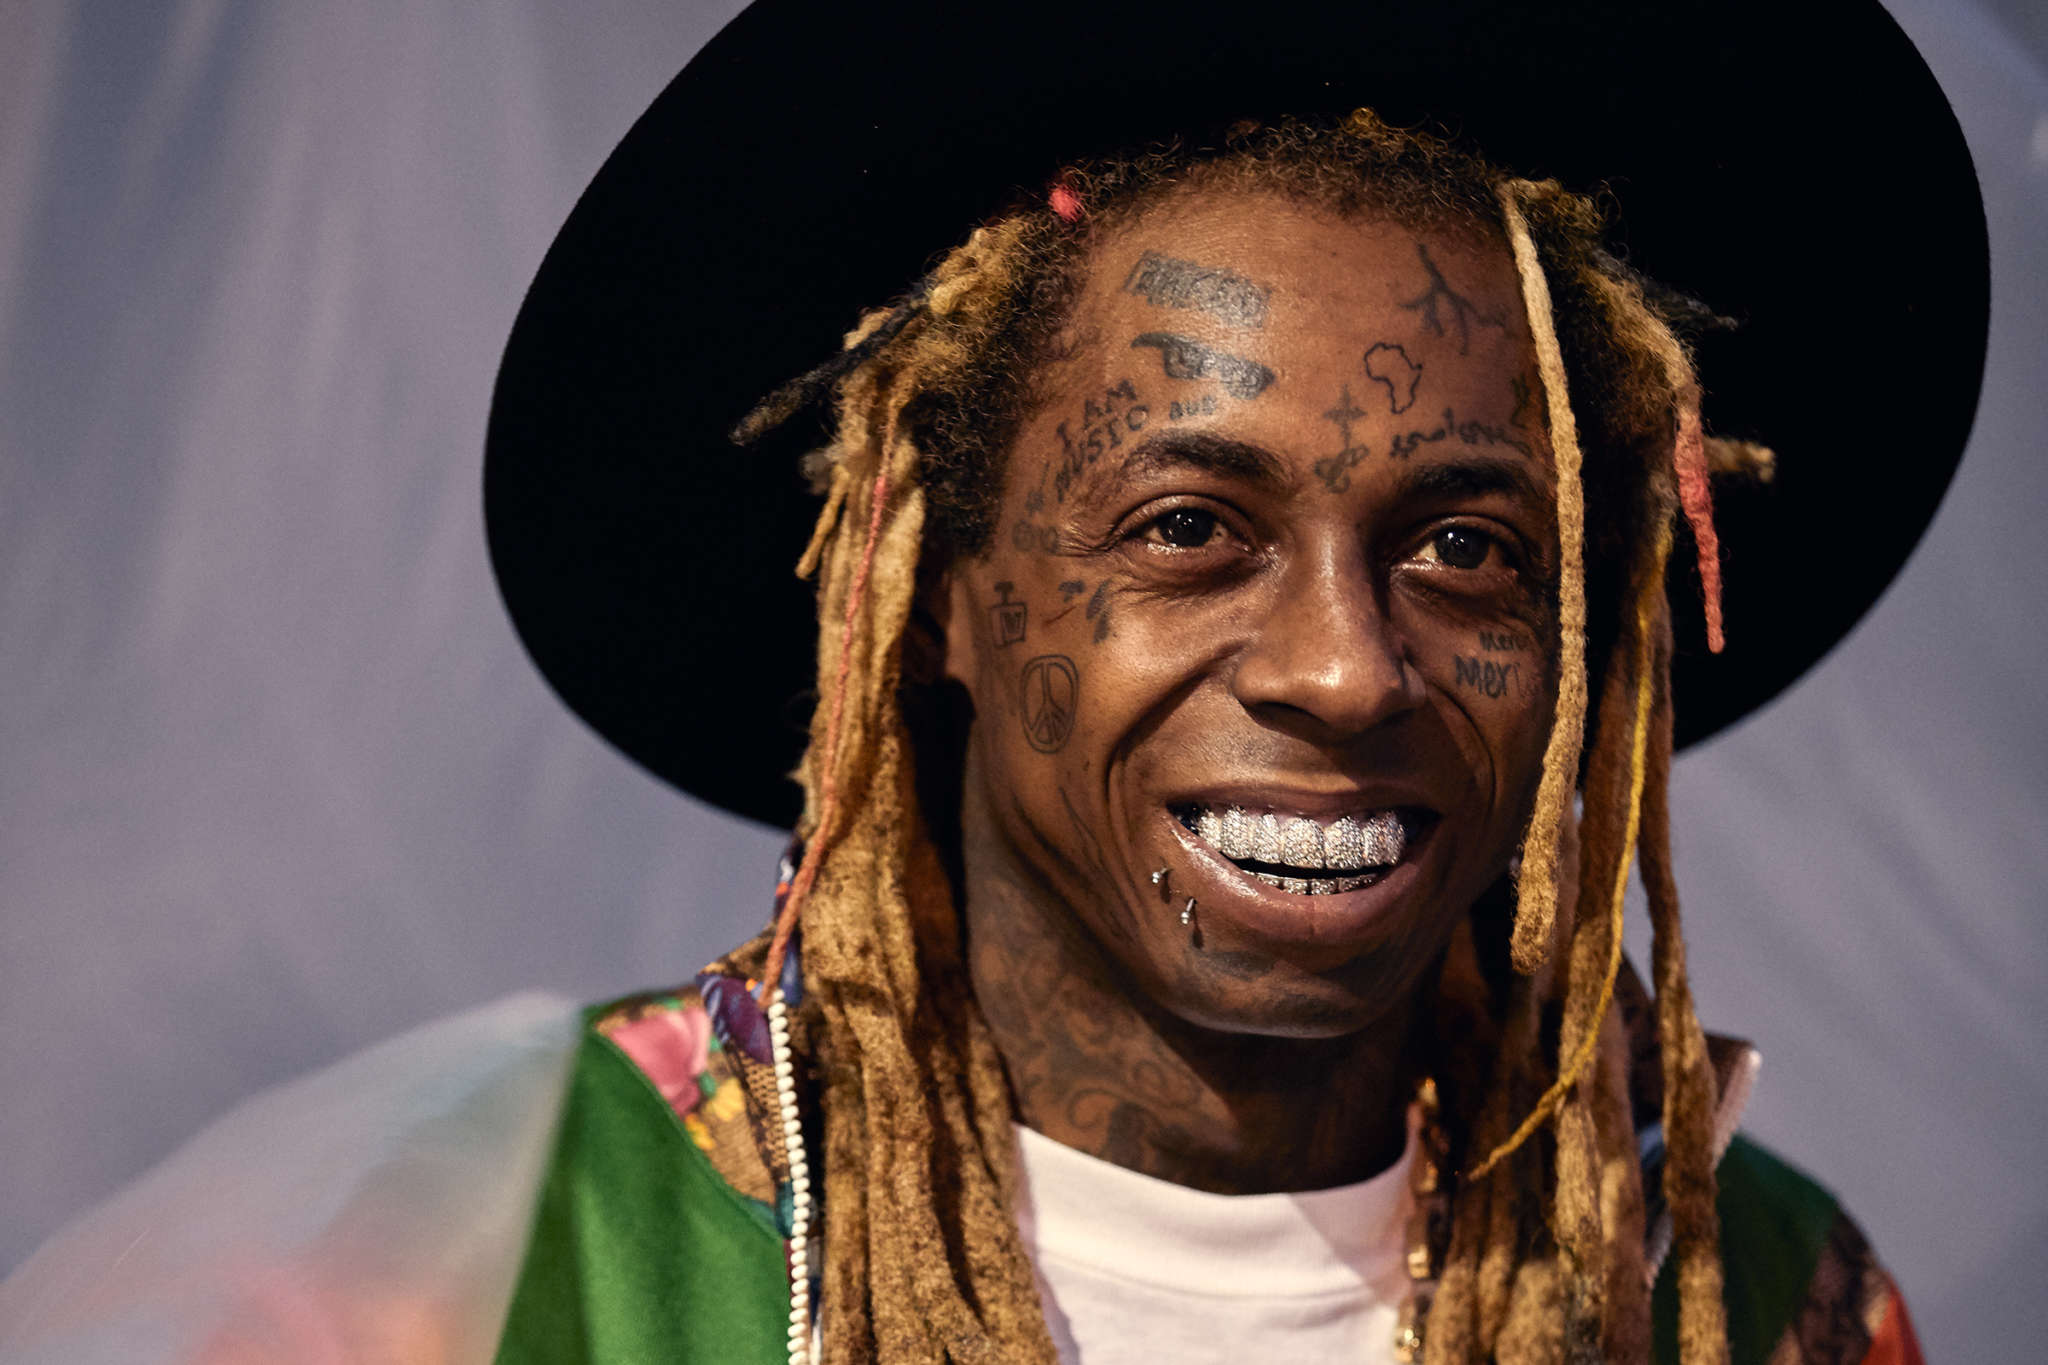 Lil Wayne Drops A Message About The Grammys That Triggers Backlash